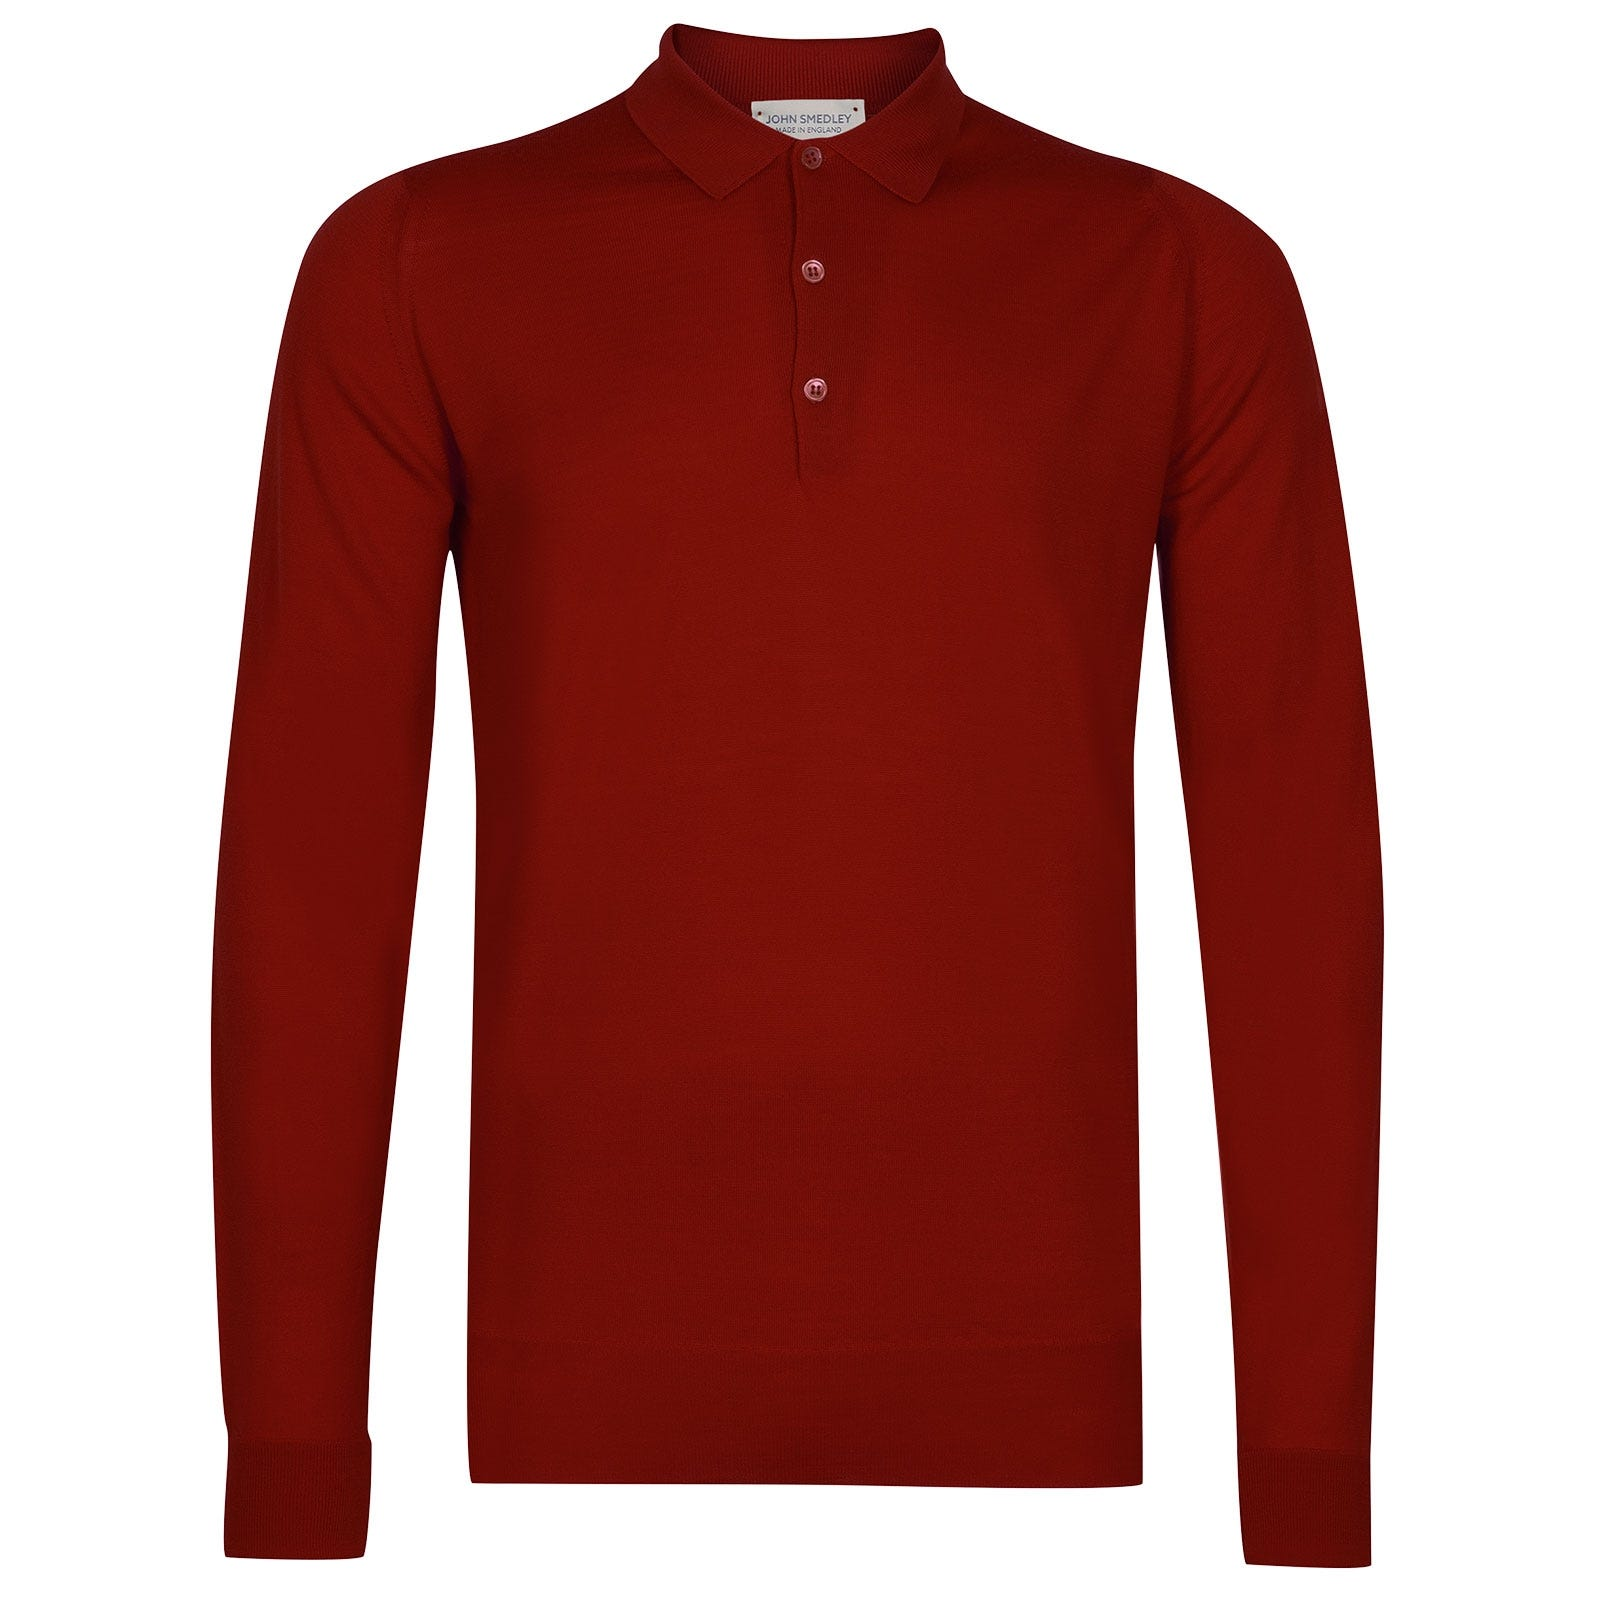 John Smedley Cotswold Merino Wool Shirt in Thermal Red-S